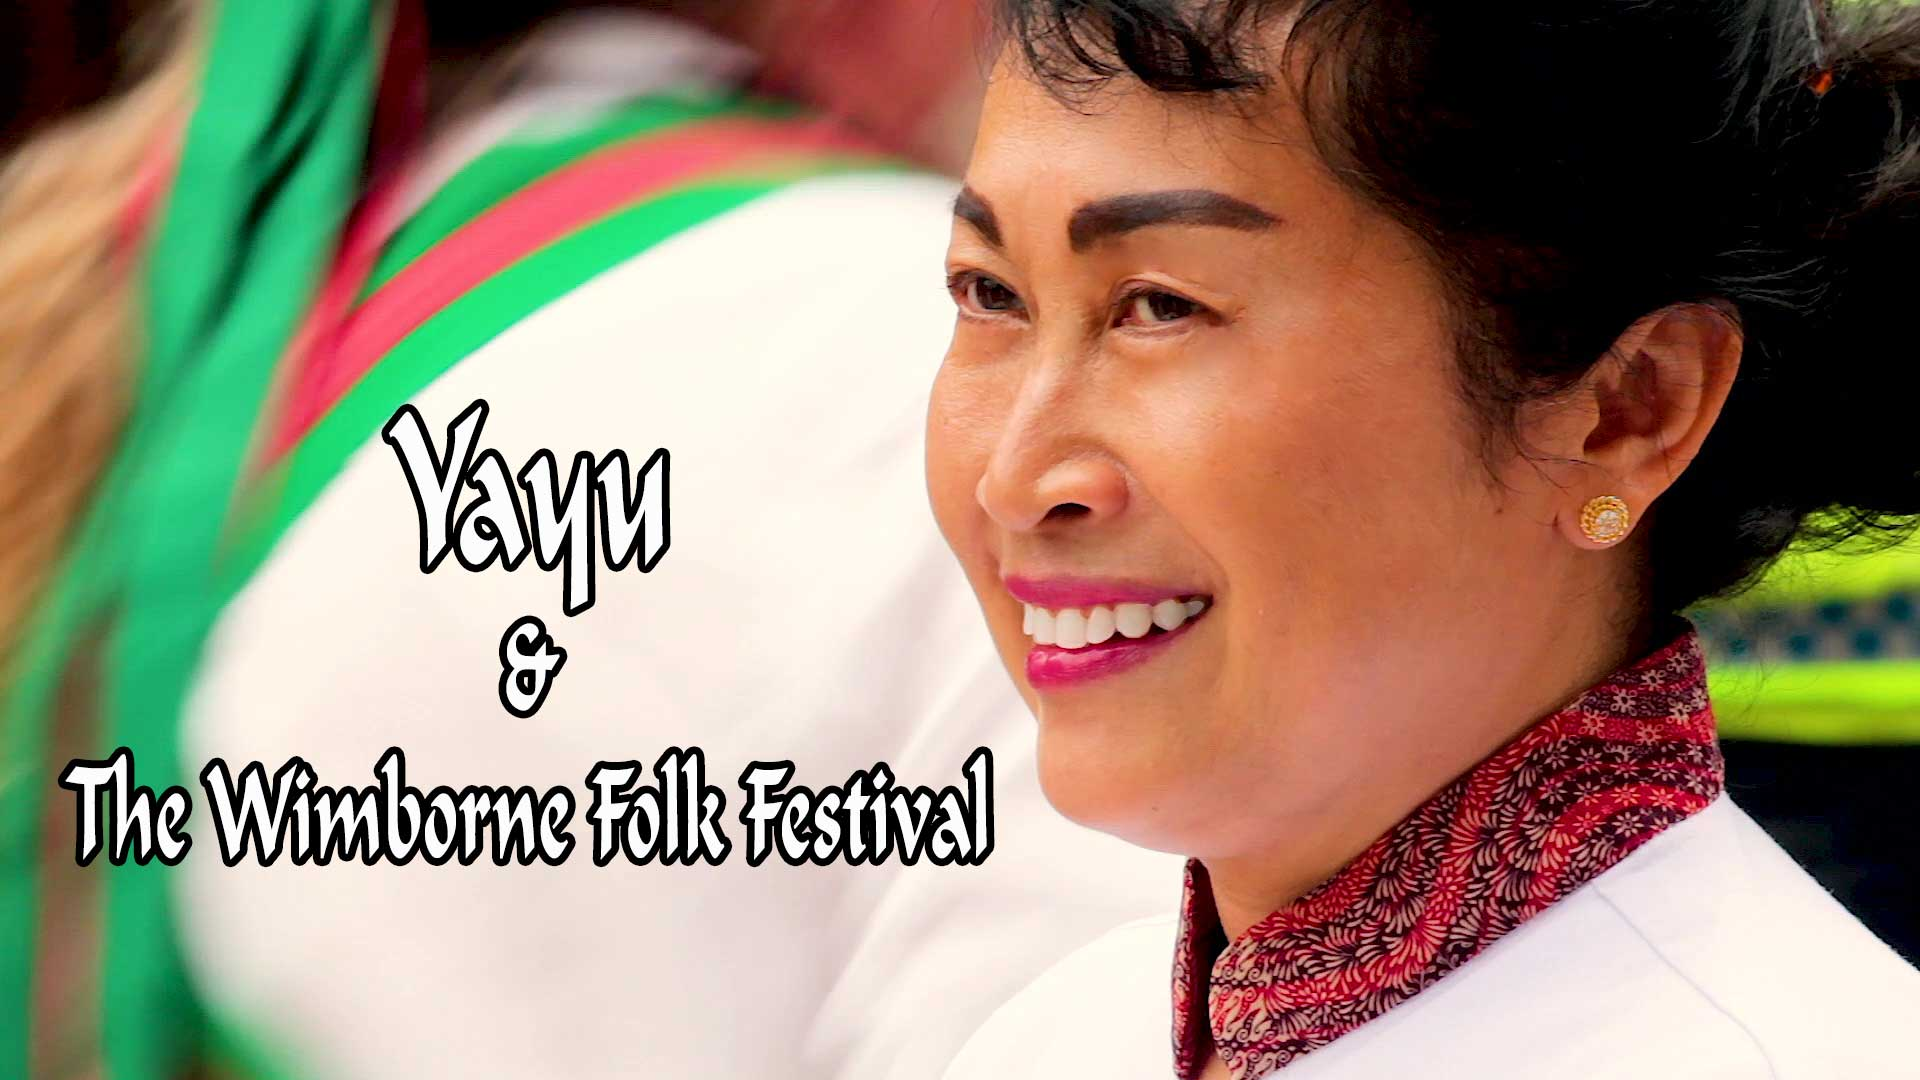 Film Festivals Yayu and The Wimborne Folk Festival